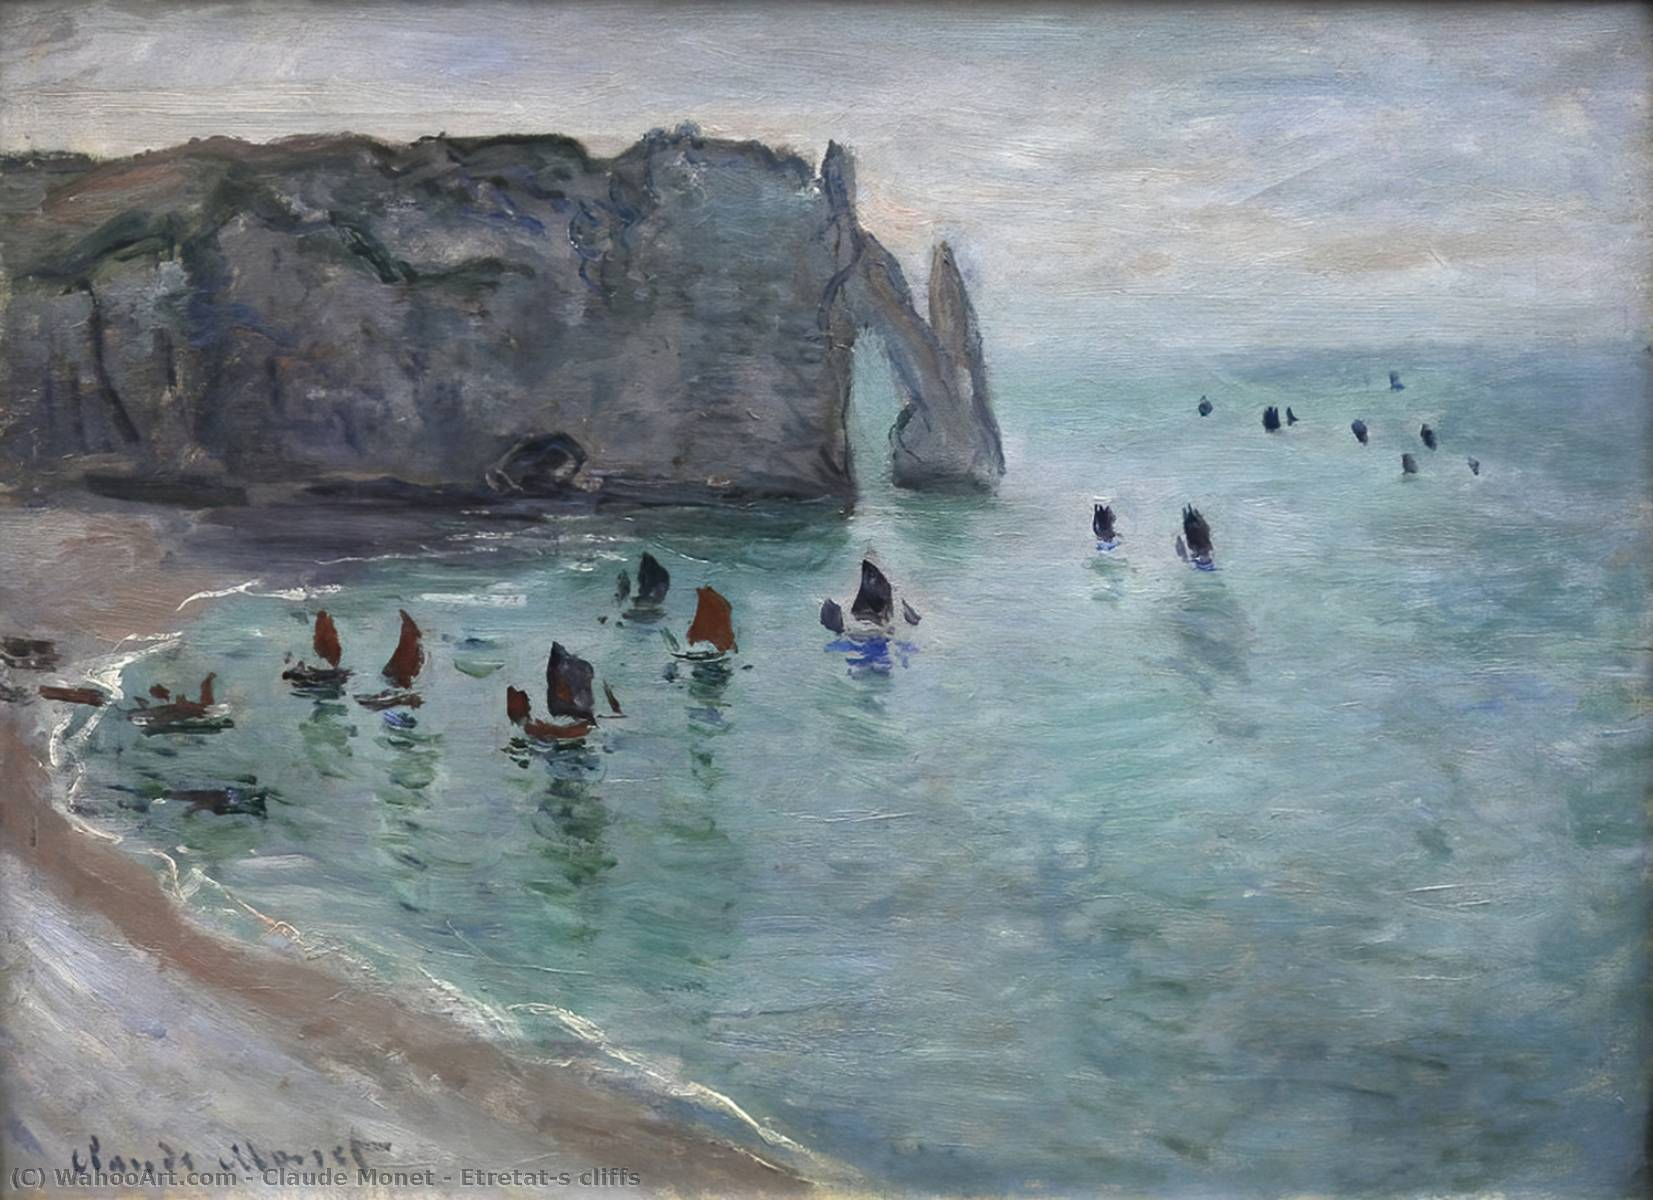 famous painting Etretat's cliffs of Claude Monet